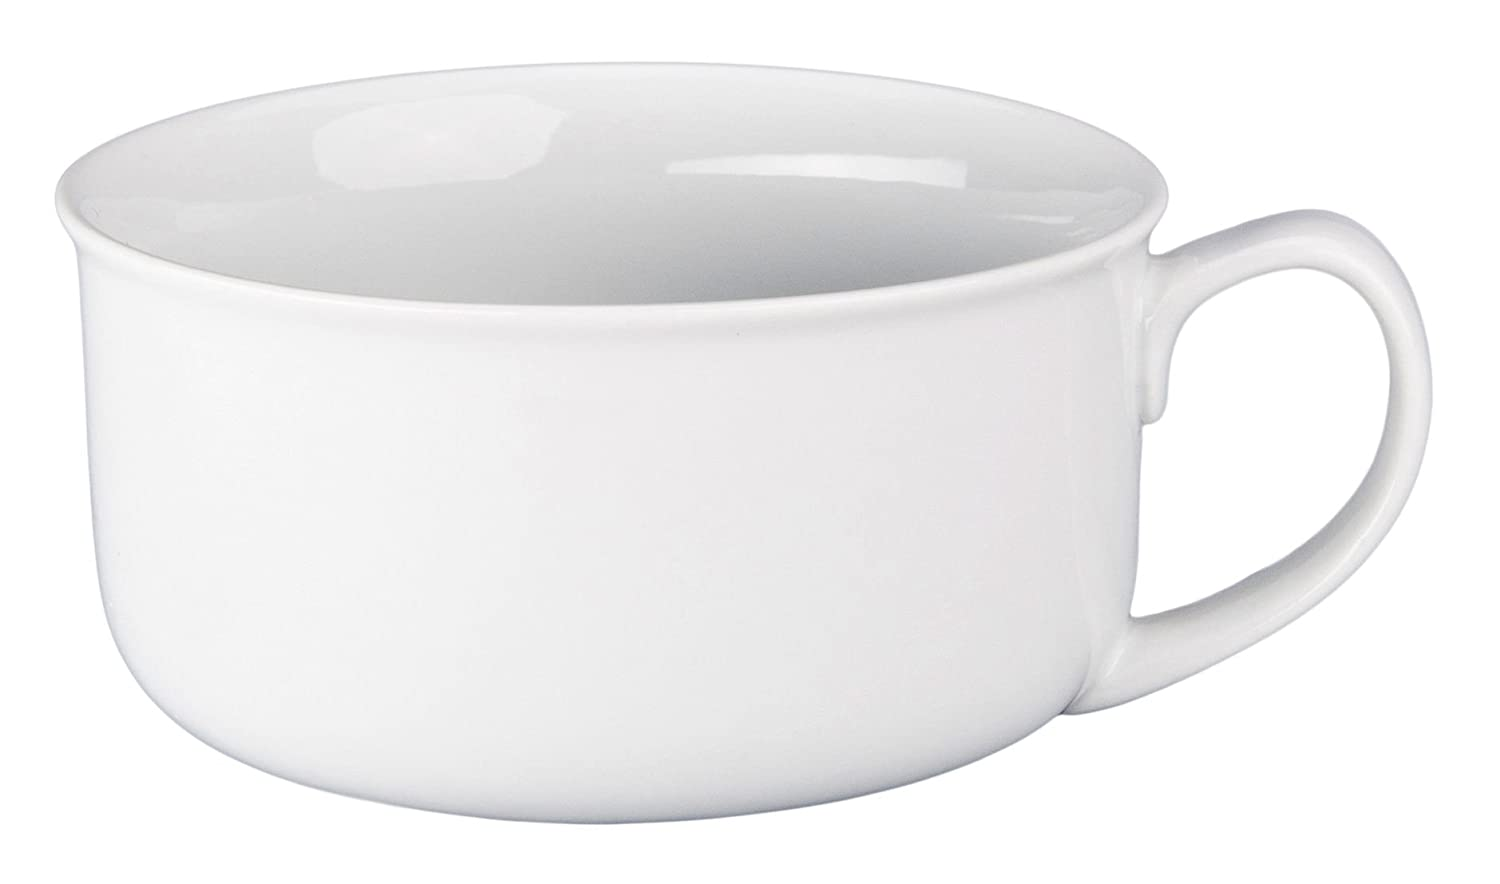 BIA Cordon Bleu Oversized Jumbo White Soup Bowl with Handle, 20 Ounce